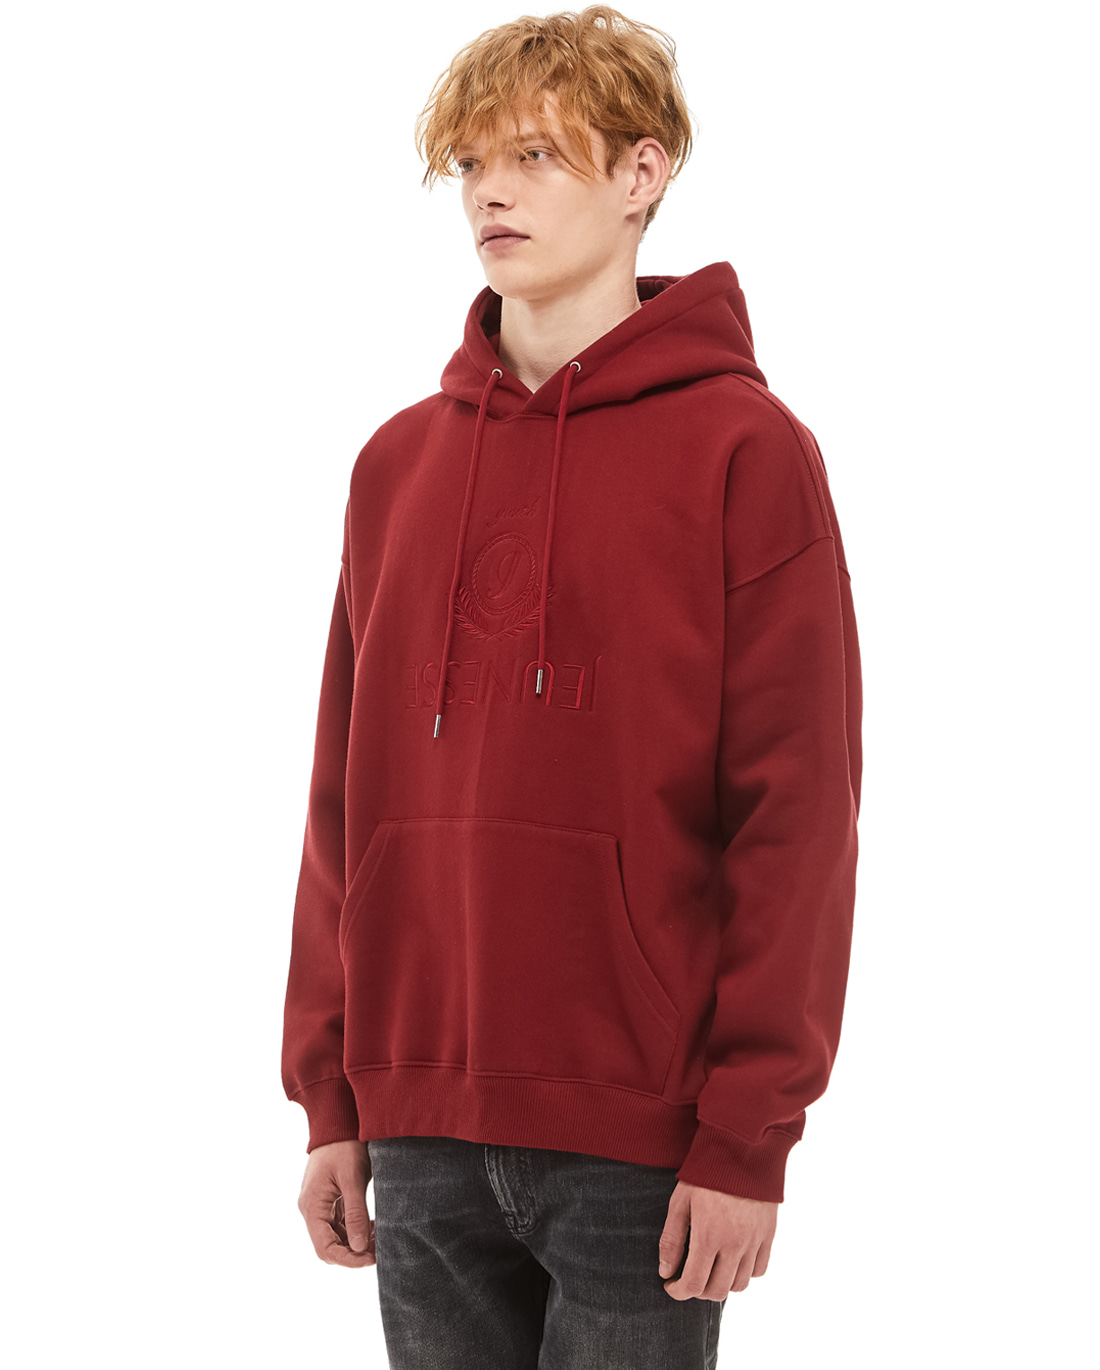 Jeunesse Embroidery Hoodie Red (4단 헤비 쭈리)